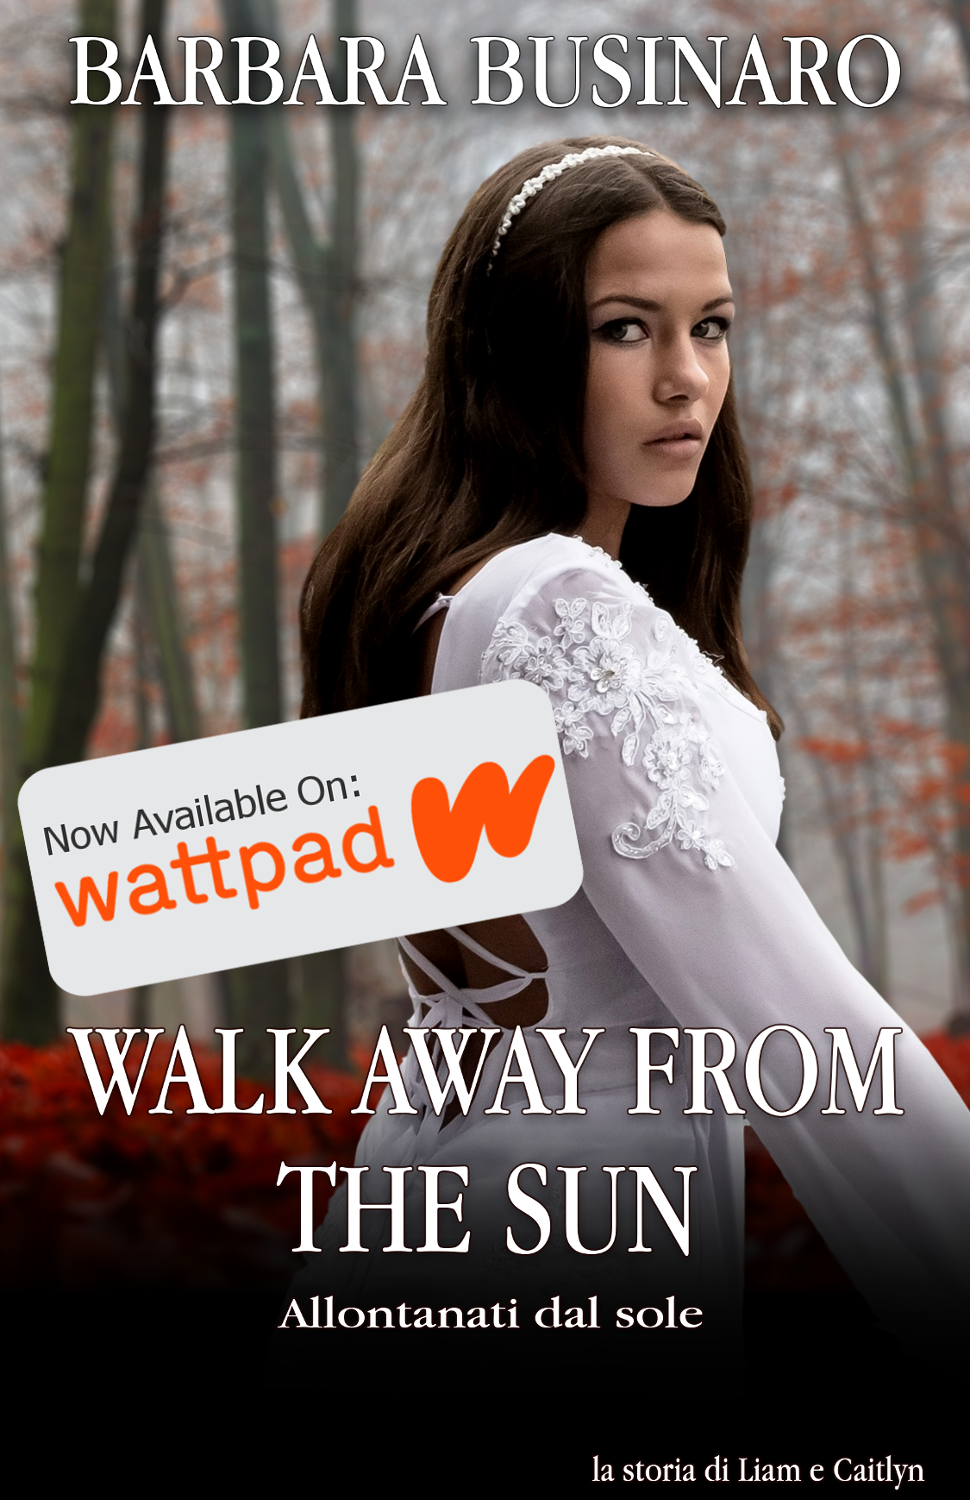 Walk Away From The Sun - Barbara Businaro su wattpad